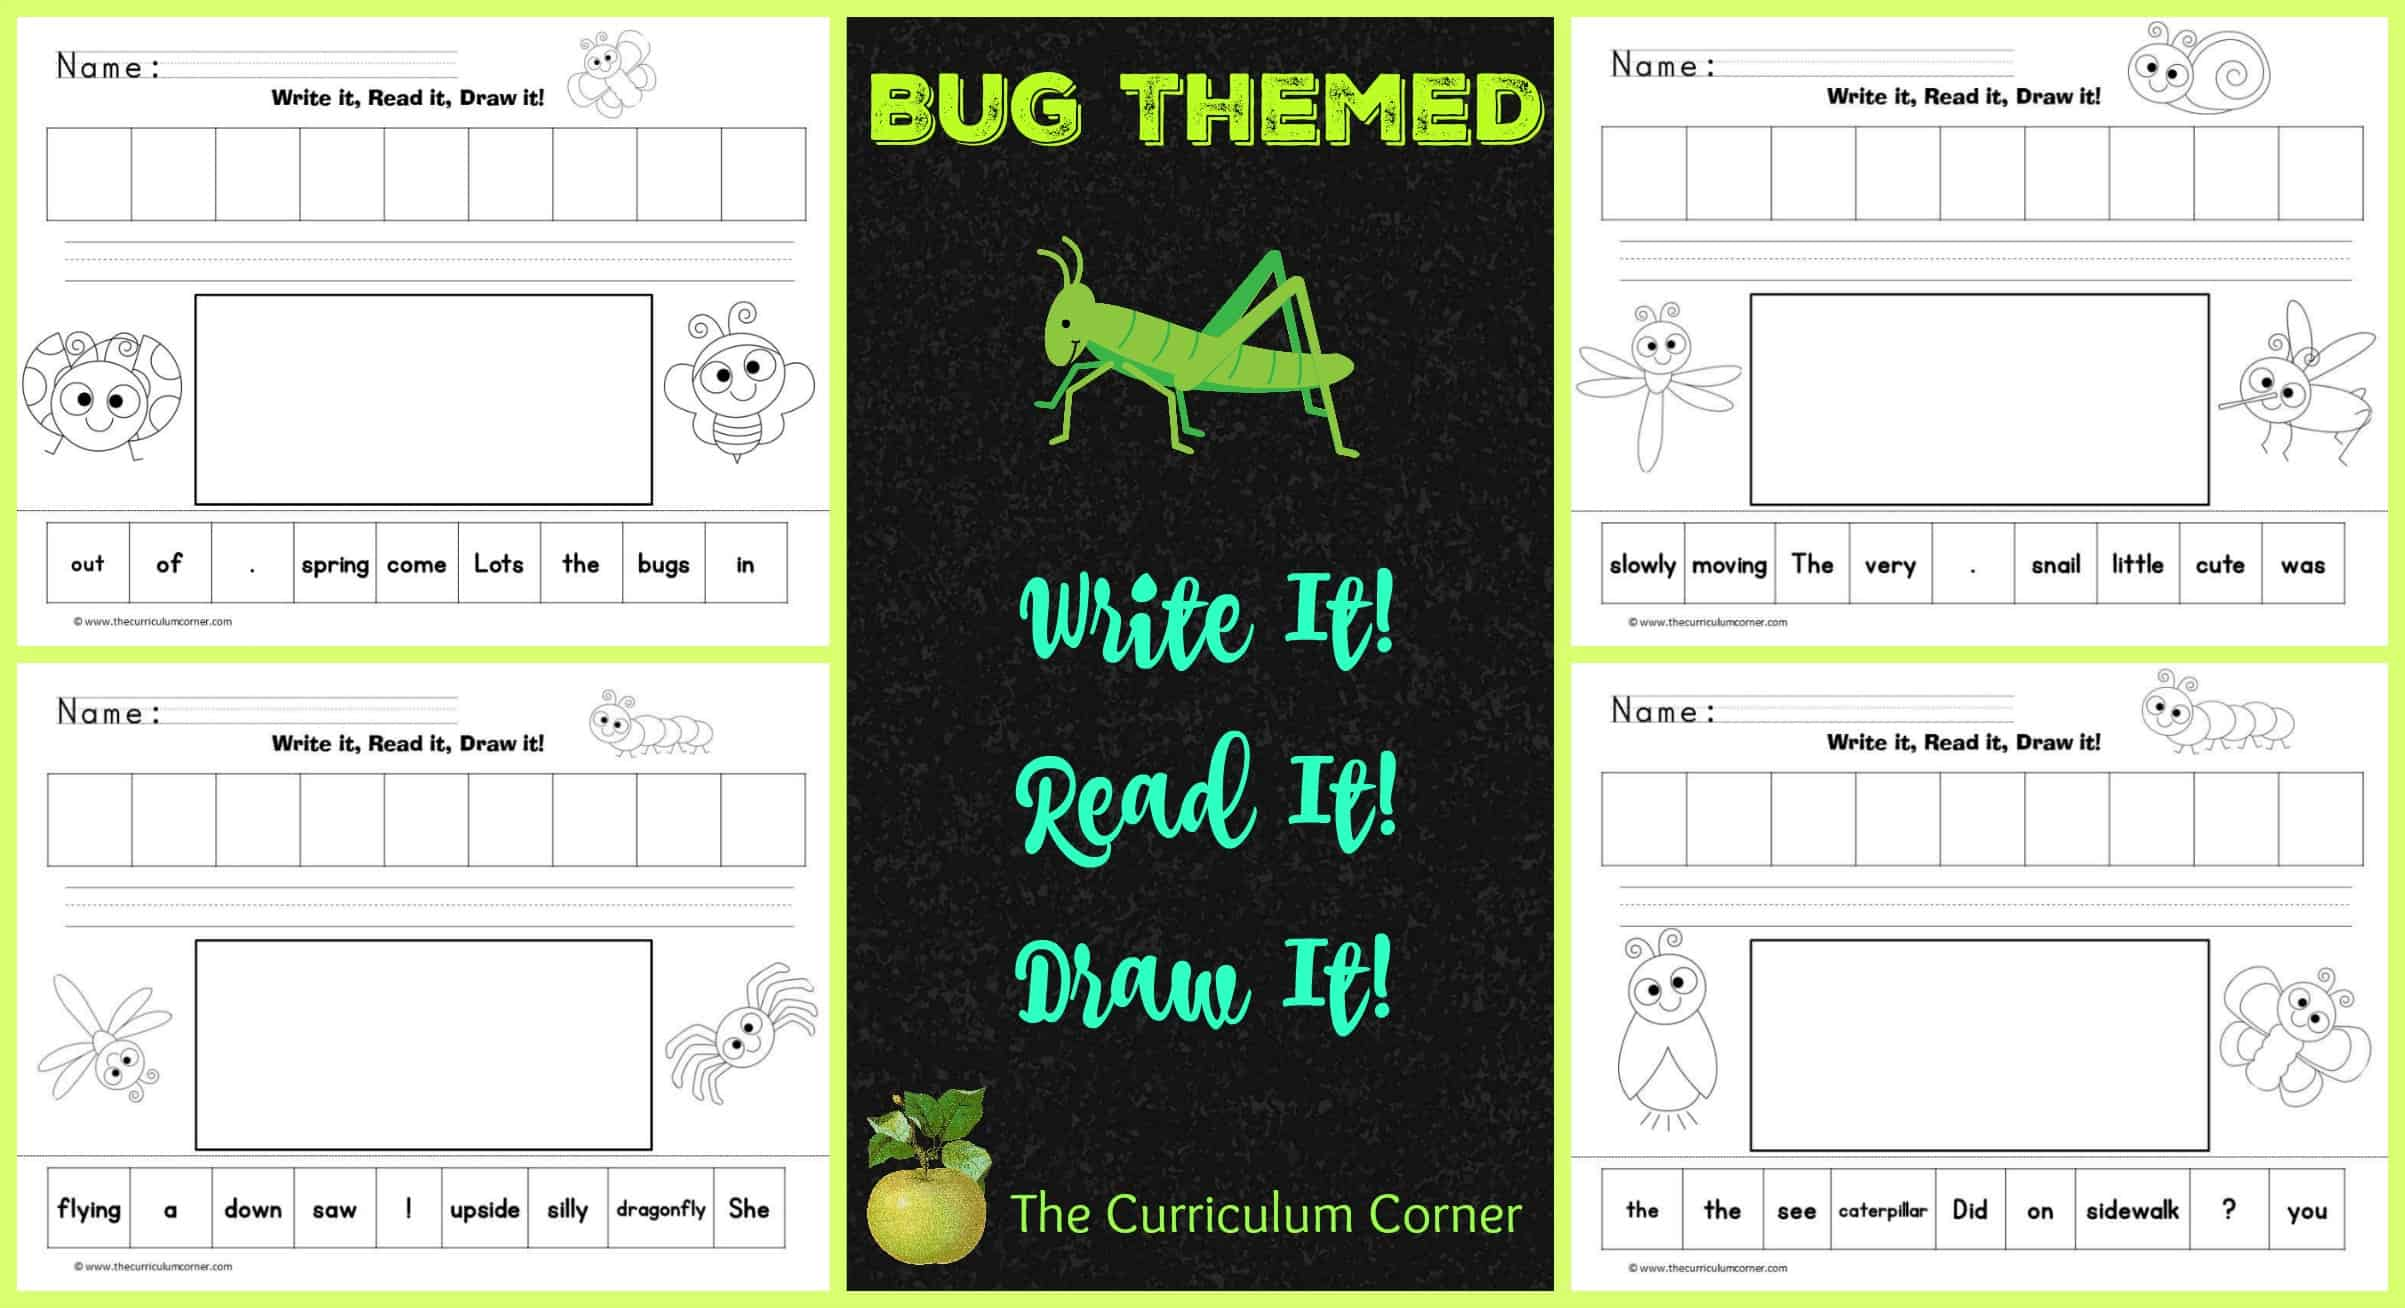 Cute Bugs Read, Write & Draw It!